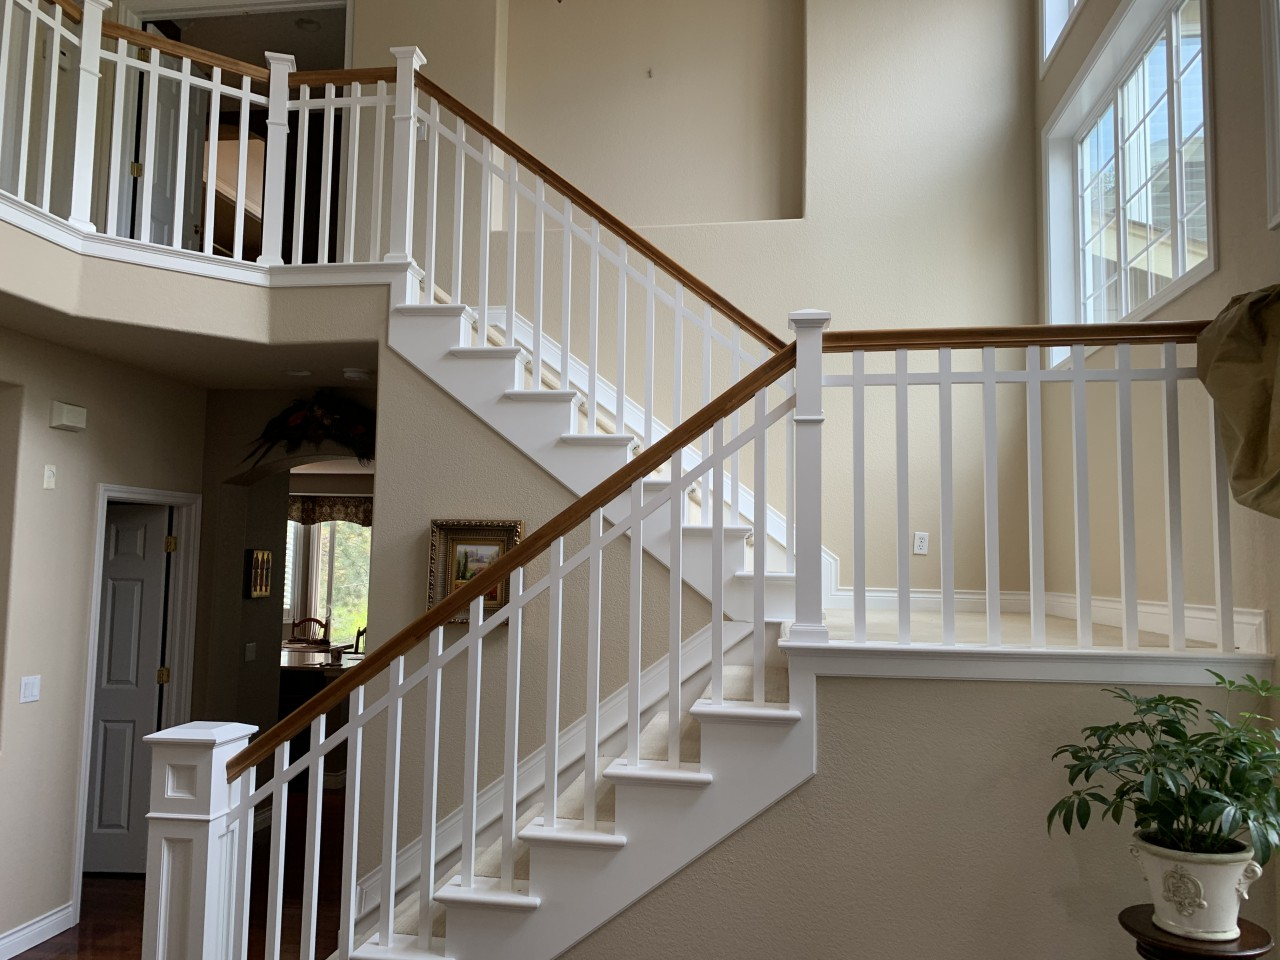 interior paint job walls and handrails